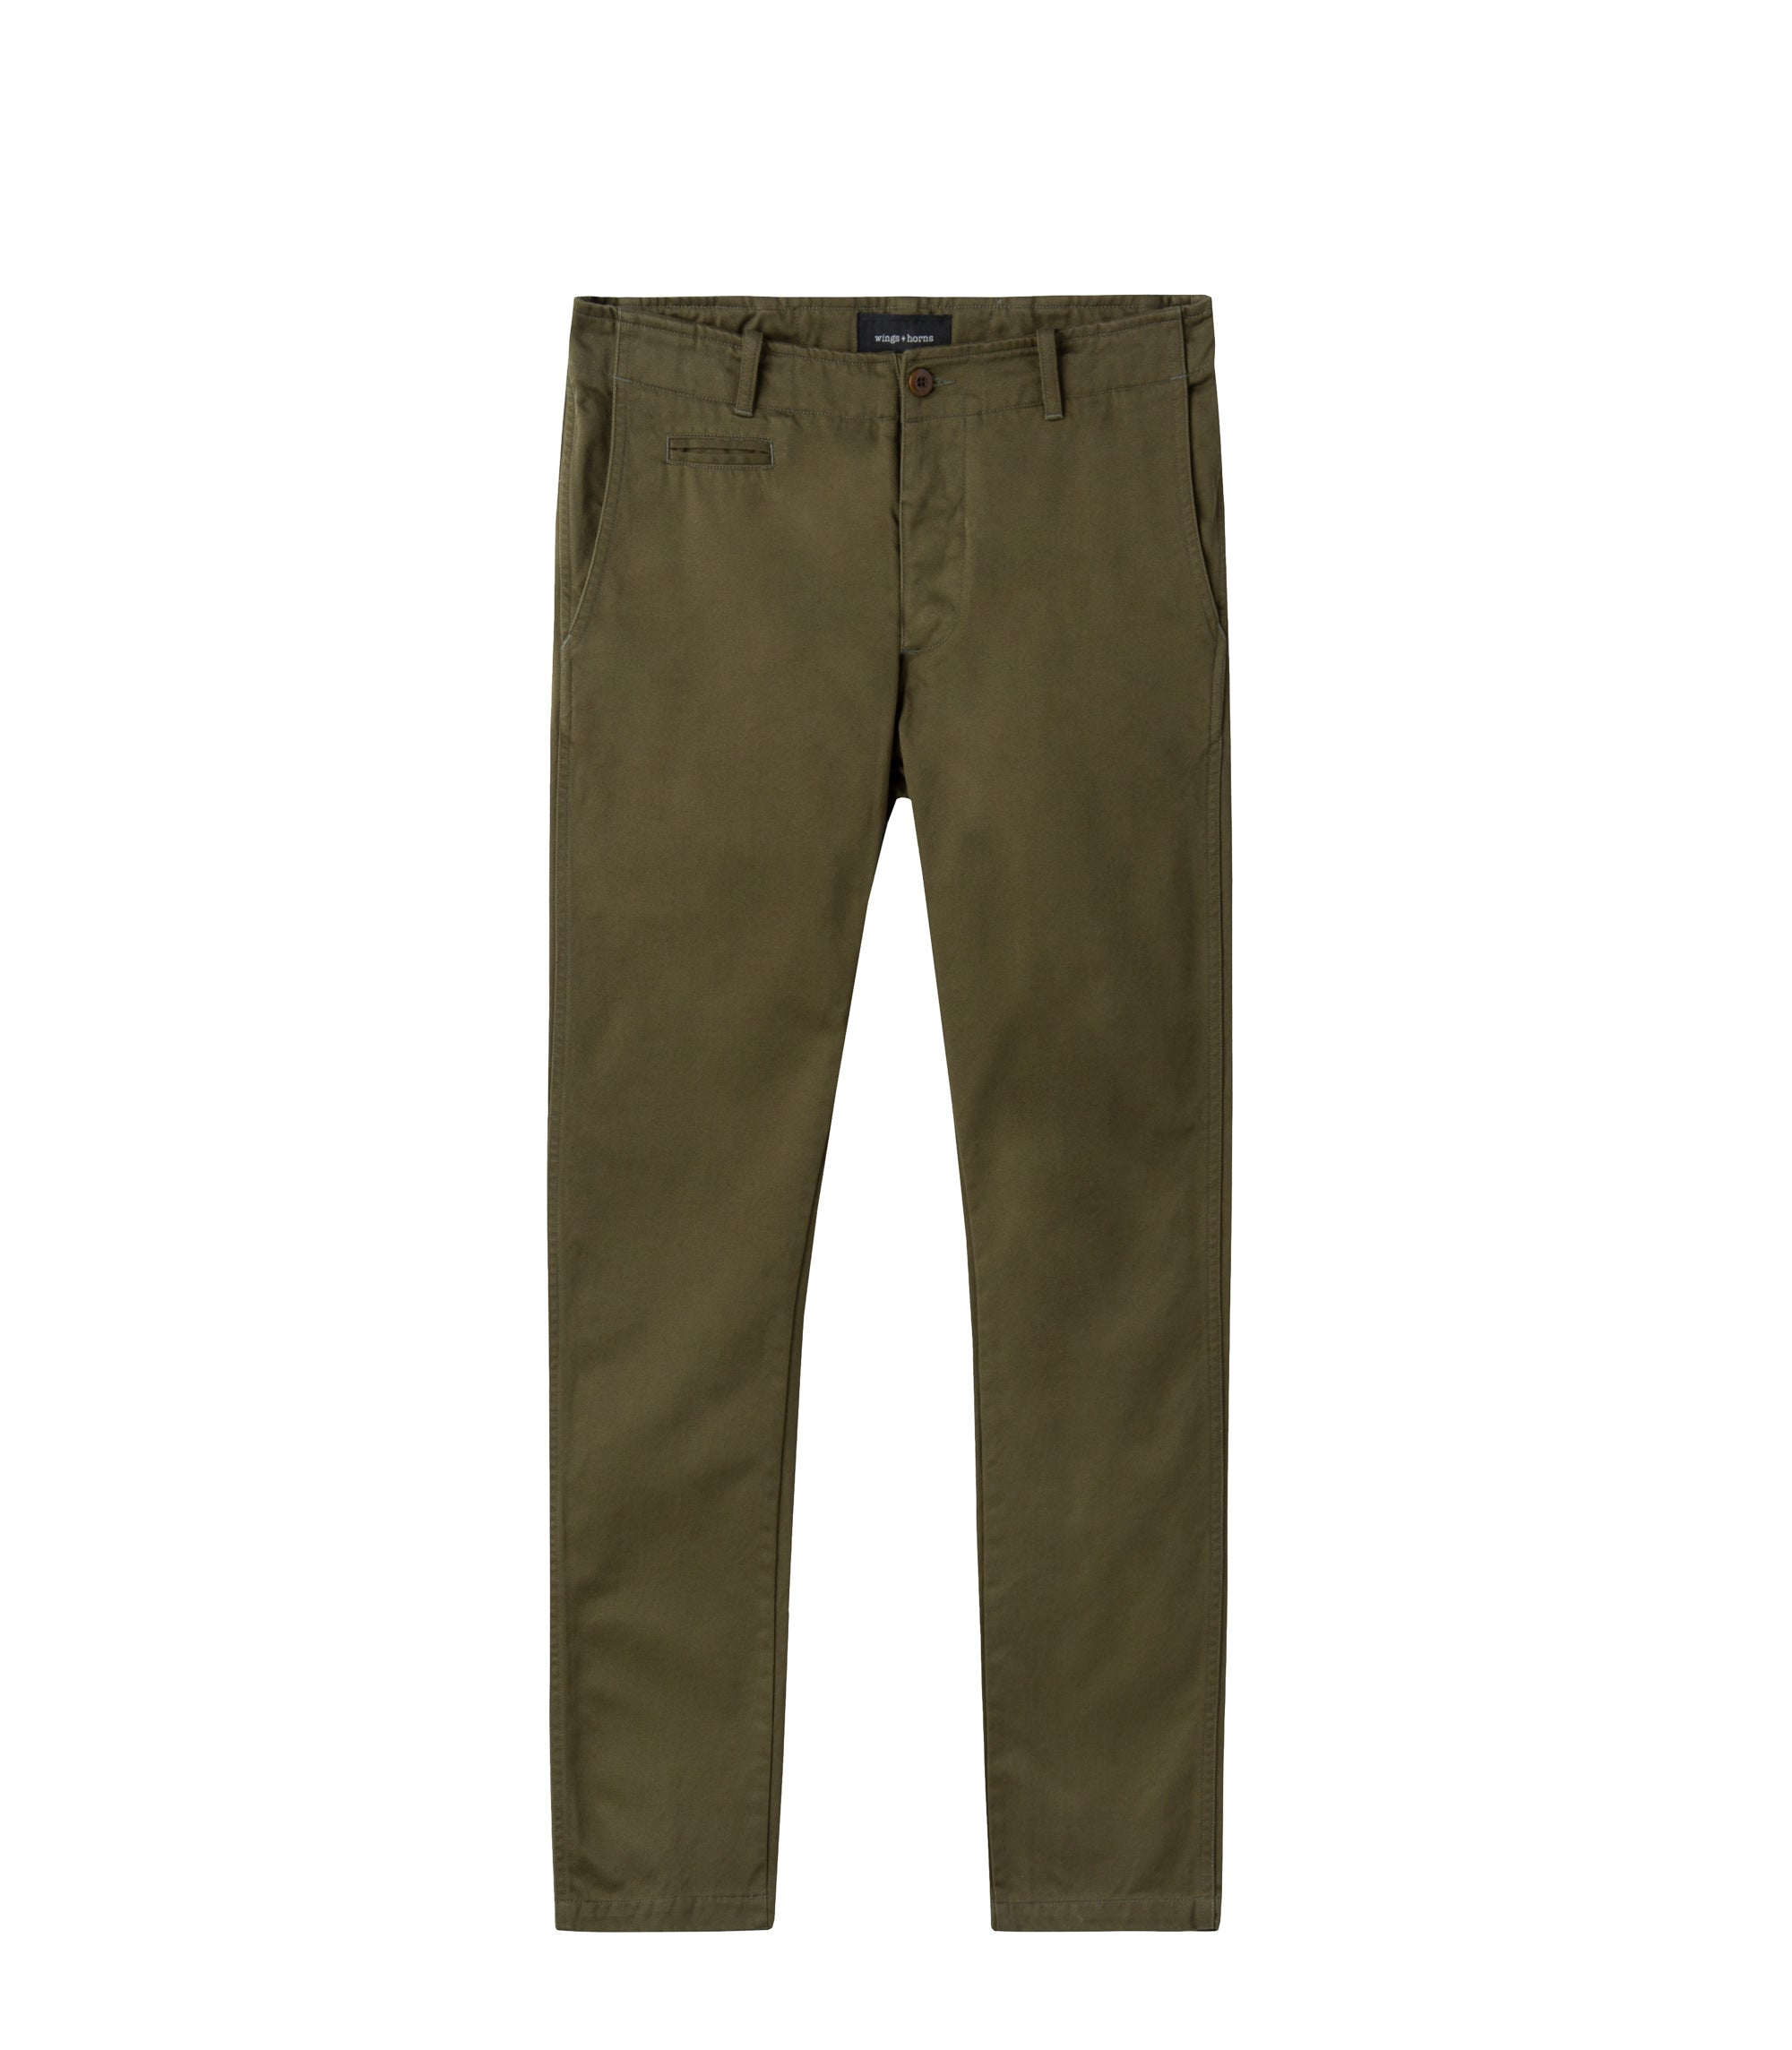 4fa0f377 wings+horns westpoint chino | wings+horns